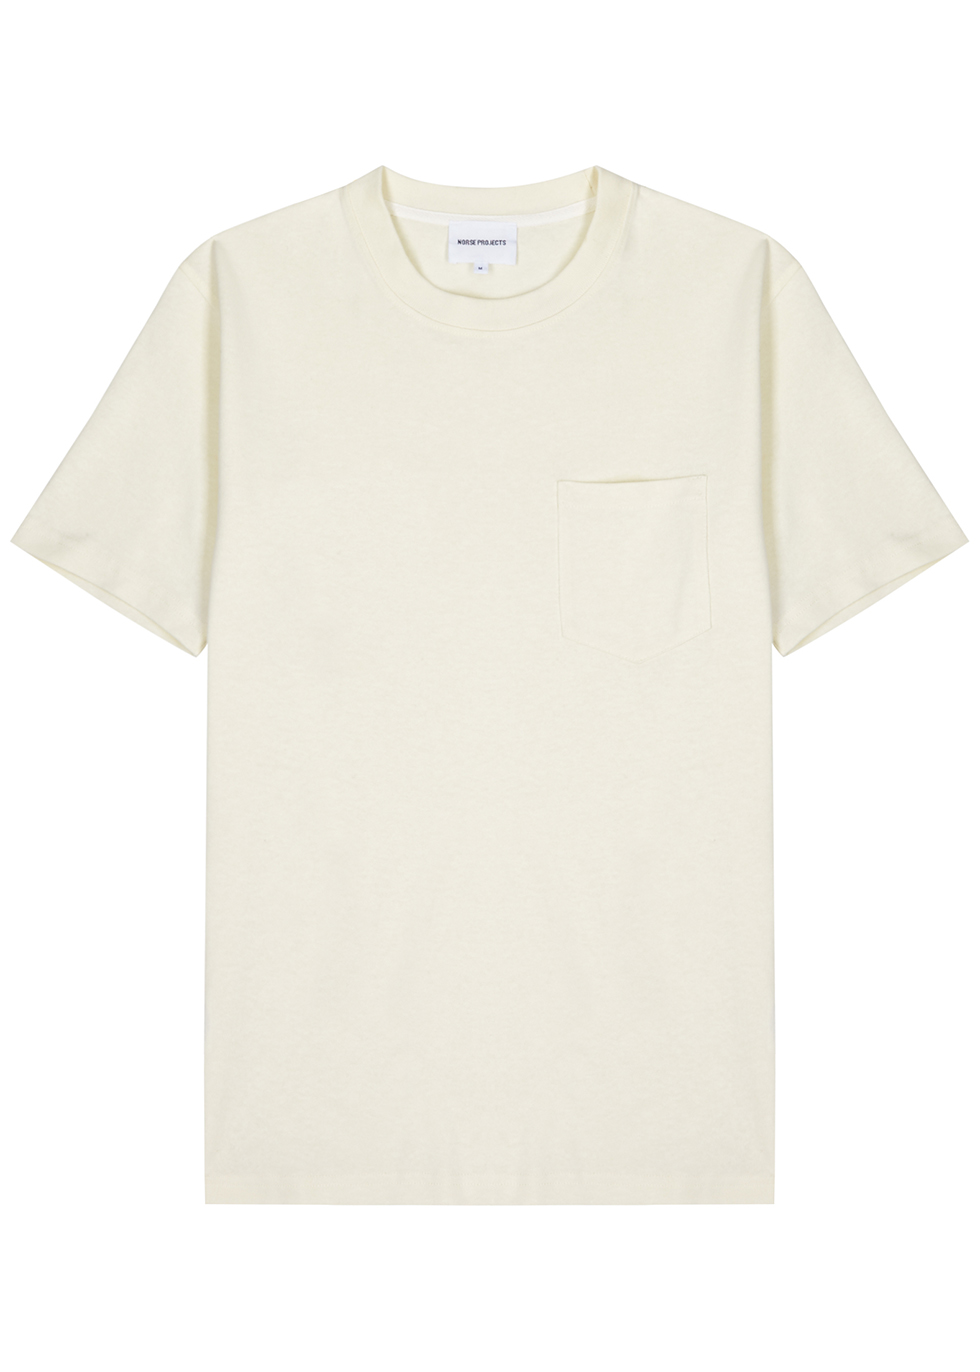 Johannes off-white cotton T-shirt